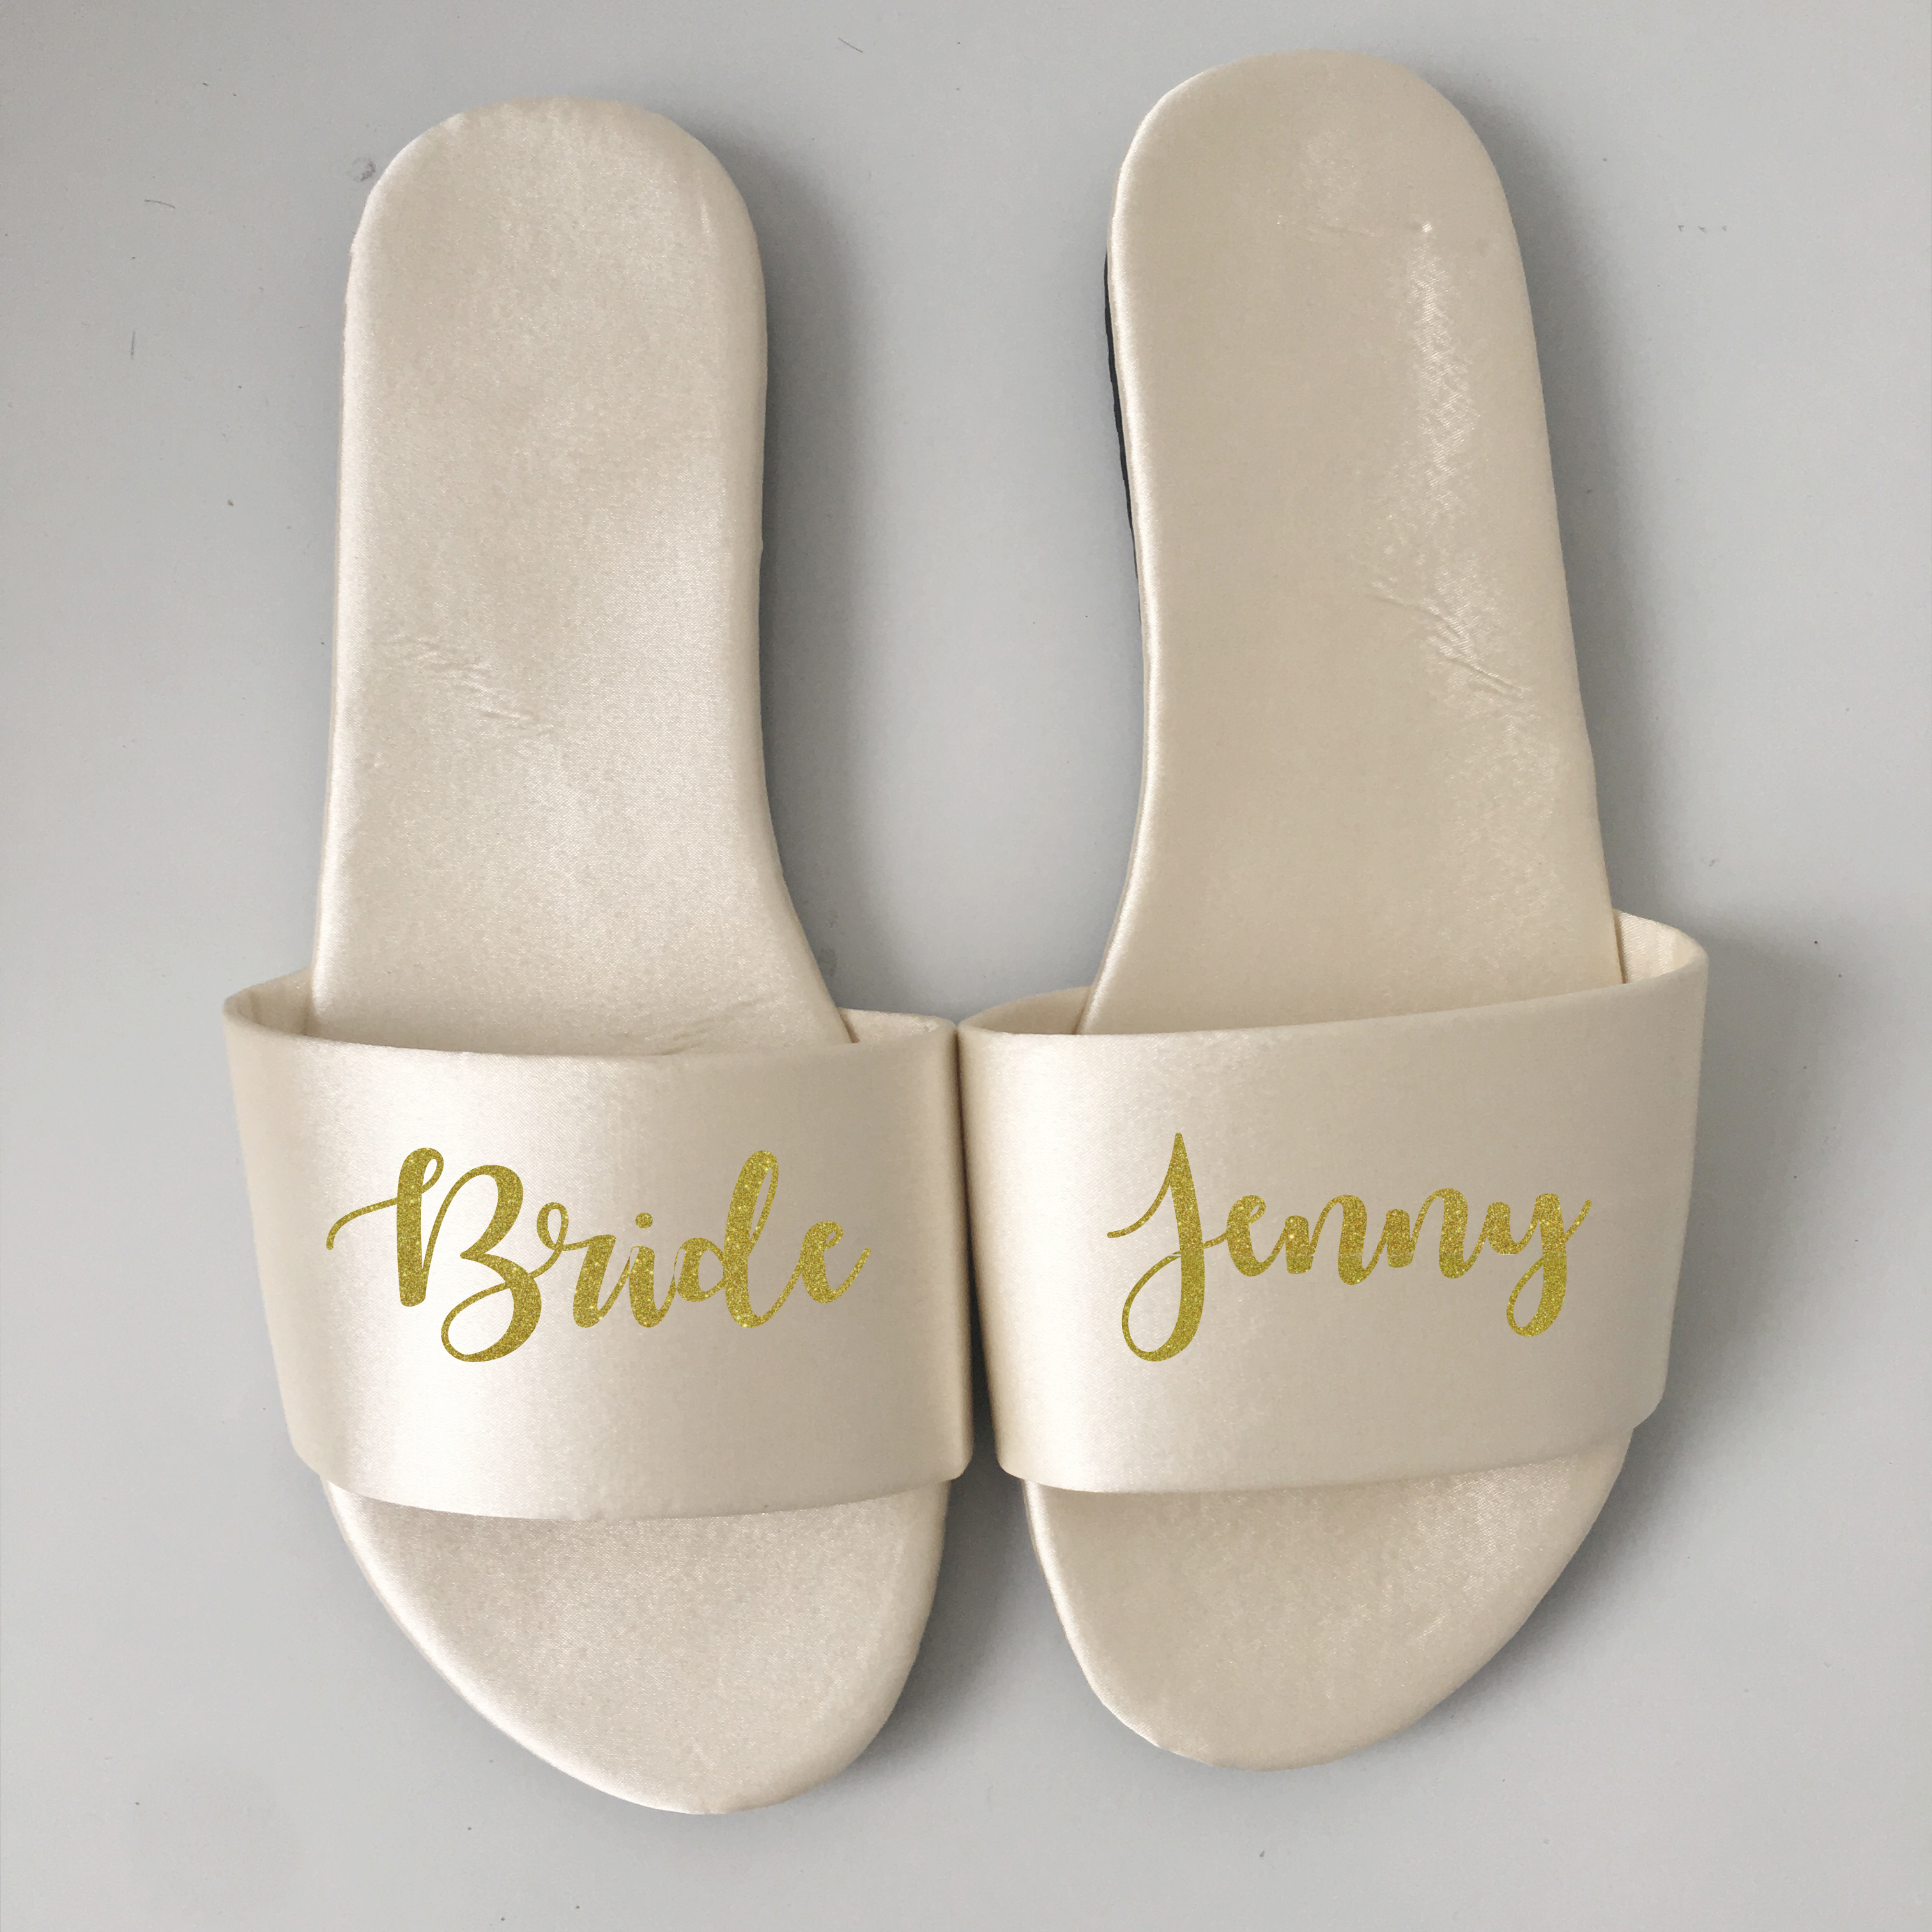 Birthday Wedding Proposal ideas bachelorette party personalized Team bride Bridesmaid gift satin slippers image